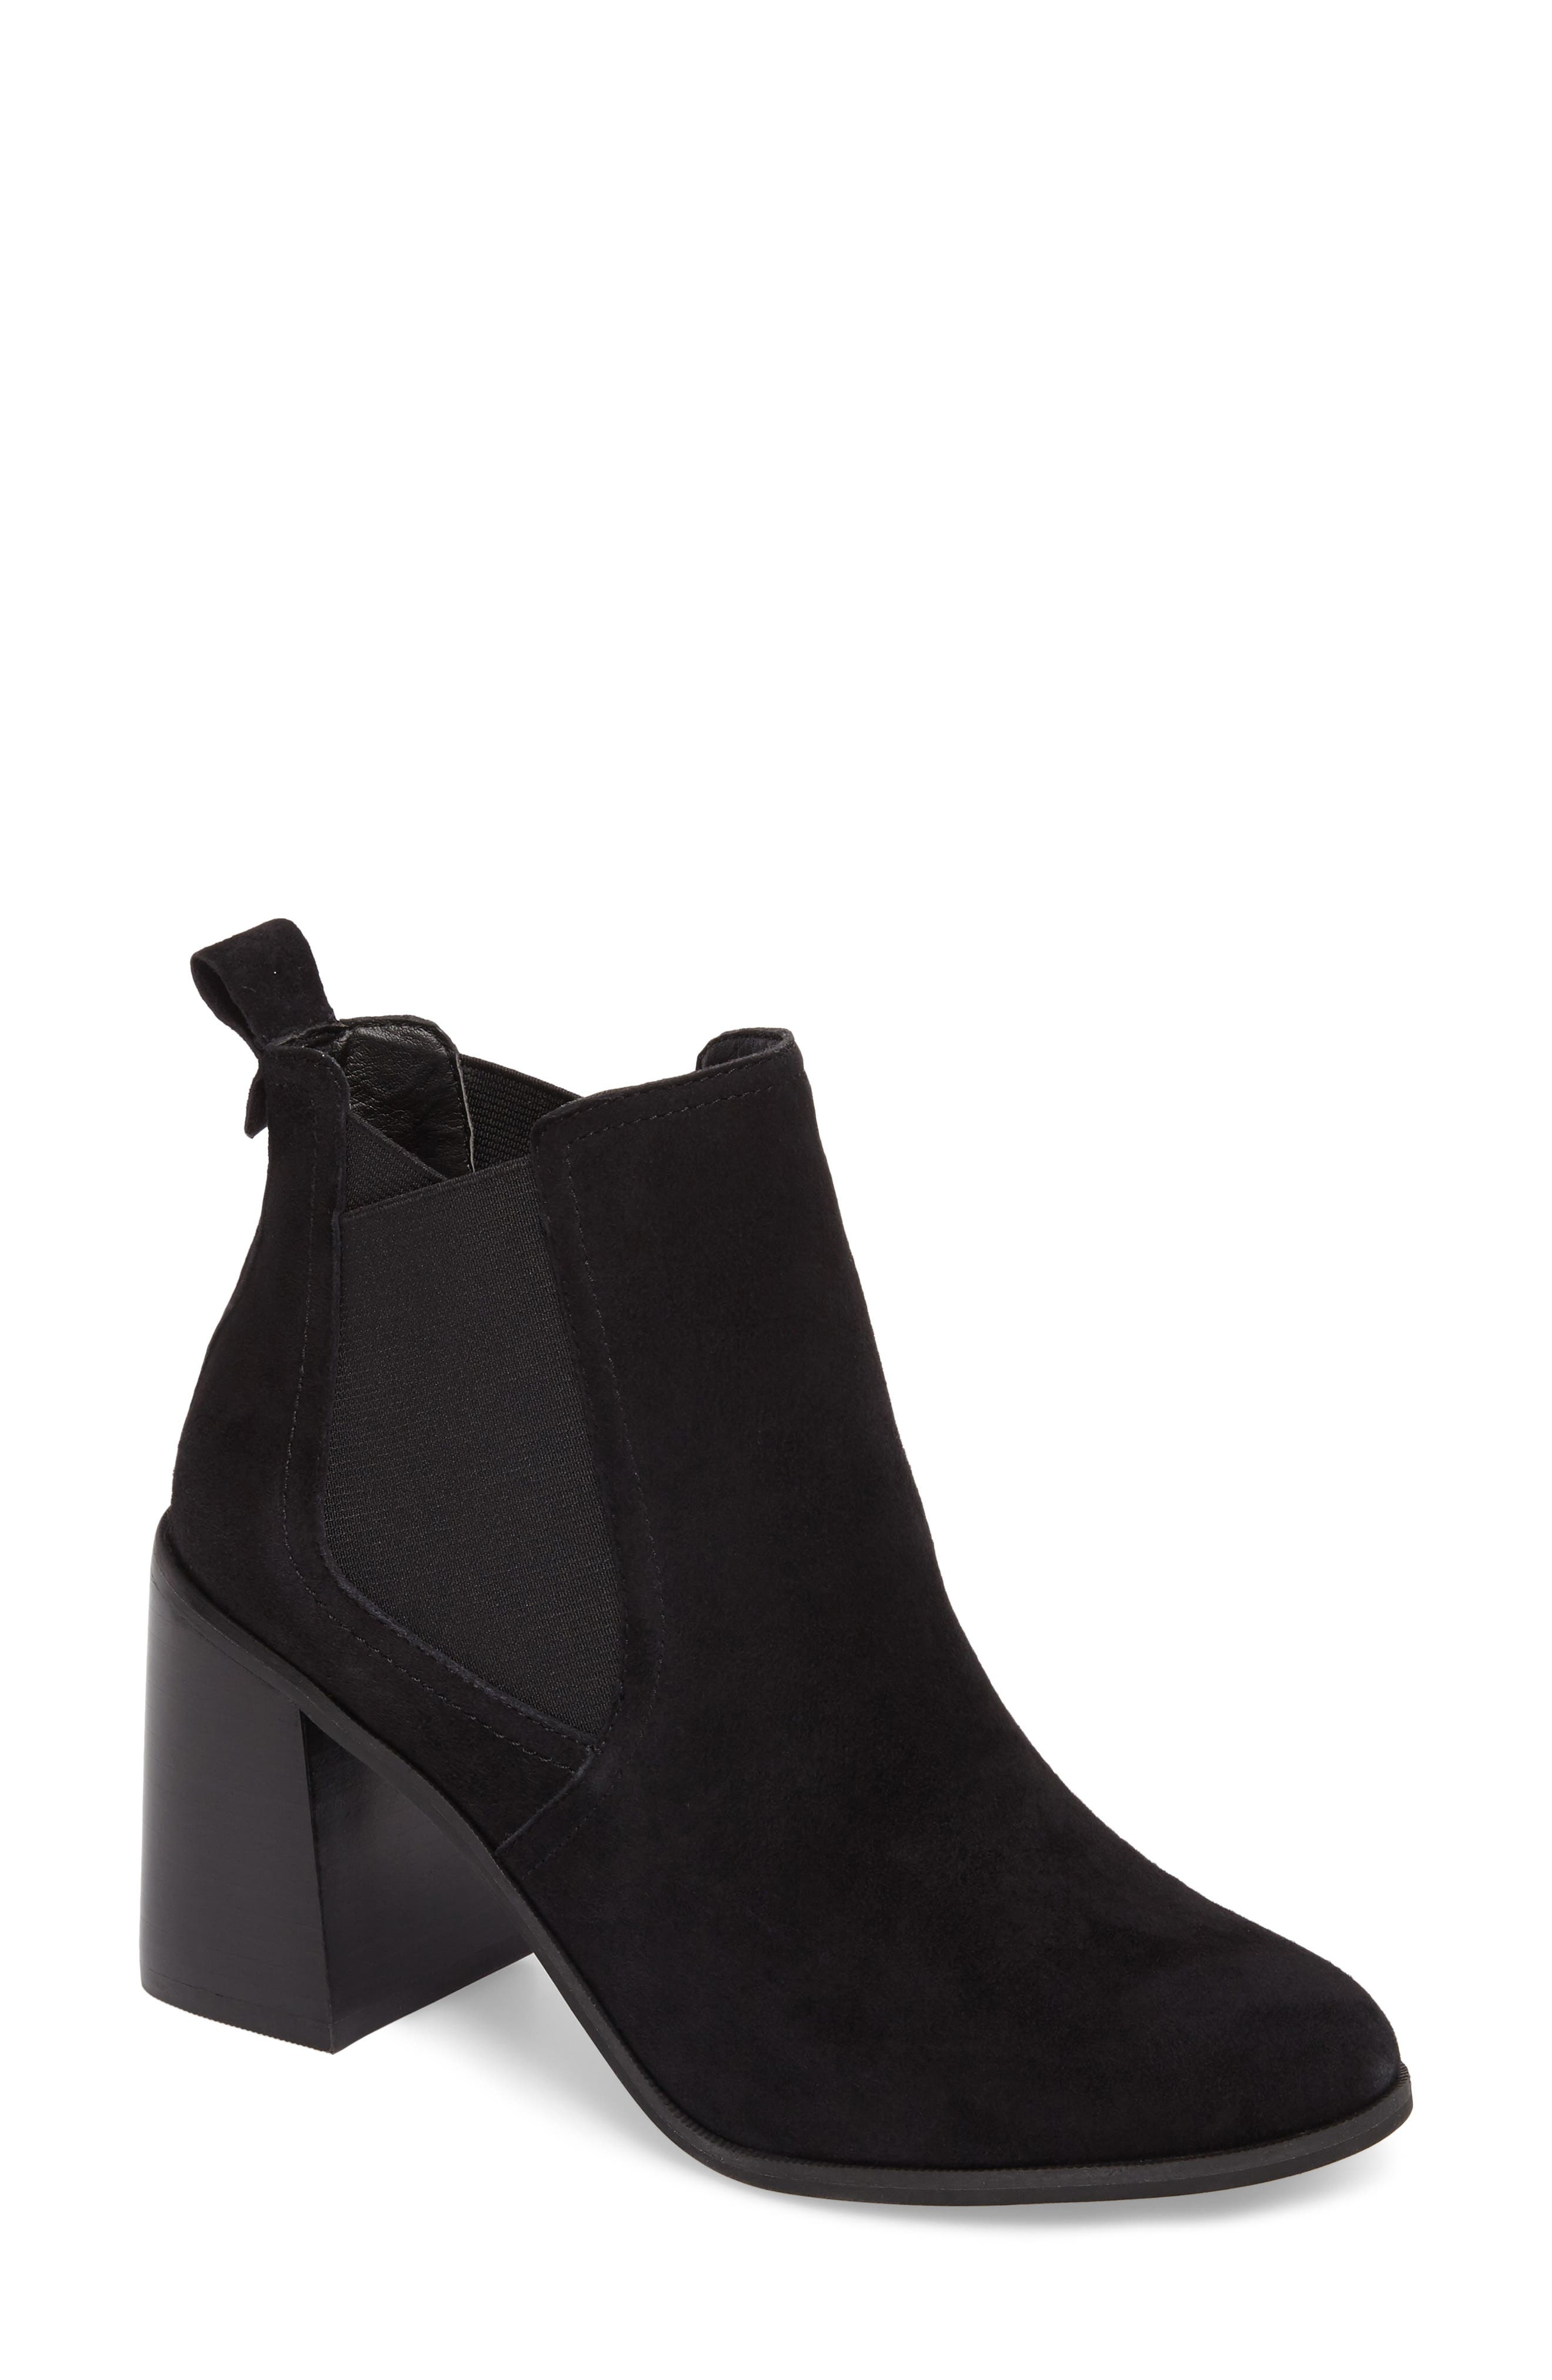 Quinn Flared Heel Chelsea Bootie,                         Main,                         color, Black Suede